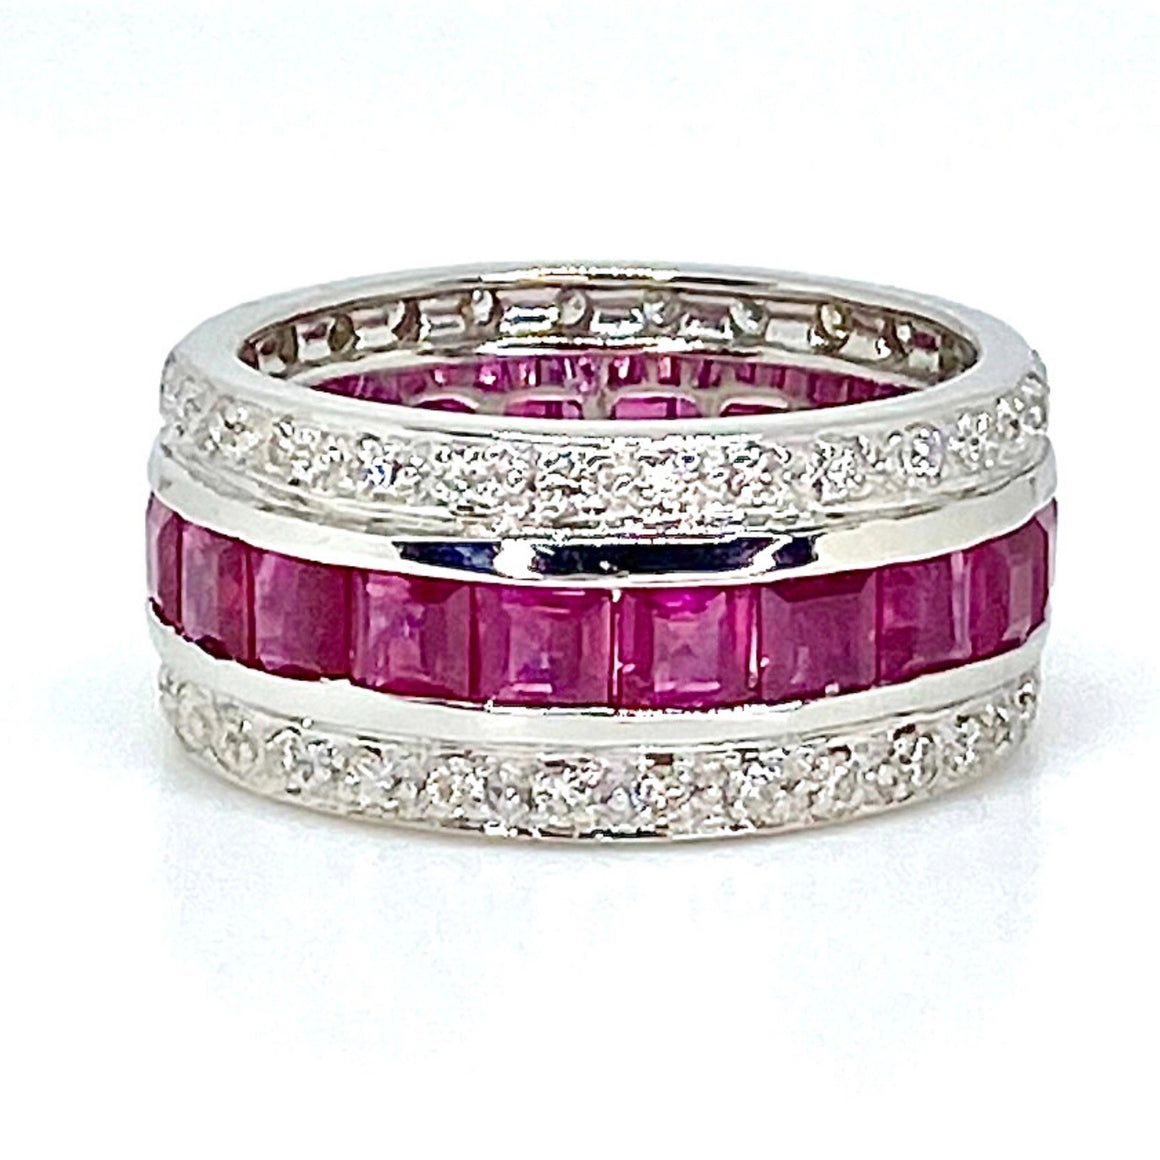 18K White Gold Ruby and Diamond Eternity Band Ring